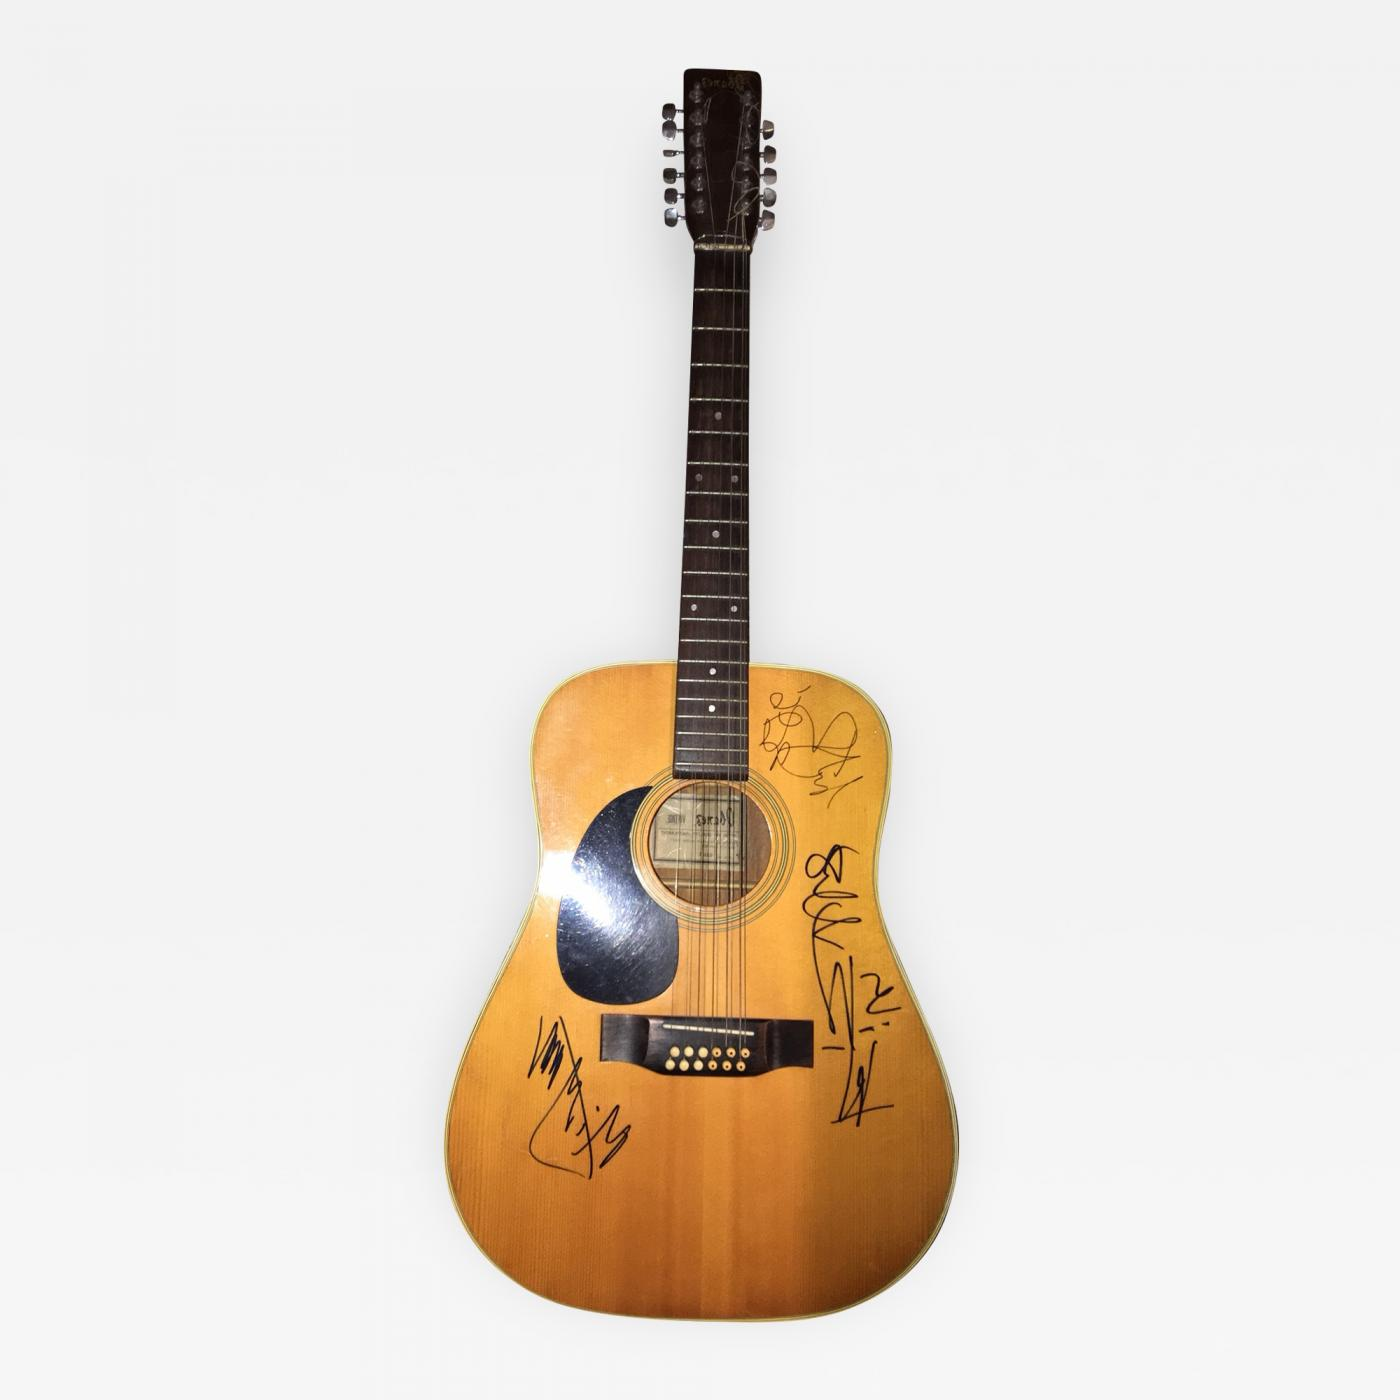 rolling stones rolling stones autographed acoustic guitar. Black Bedroom Furniture Sets. Home Design Ideas